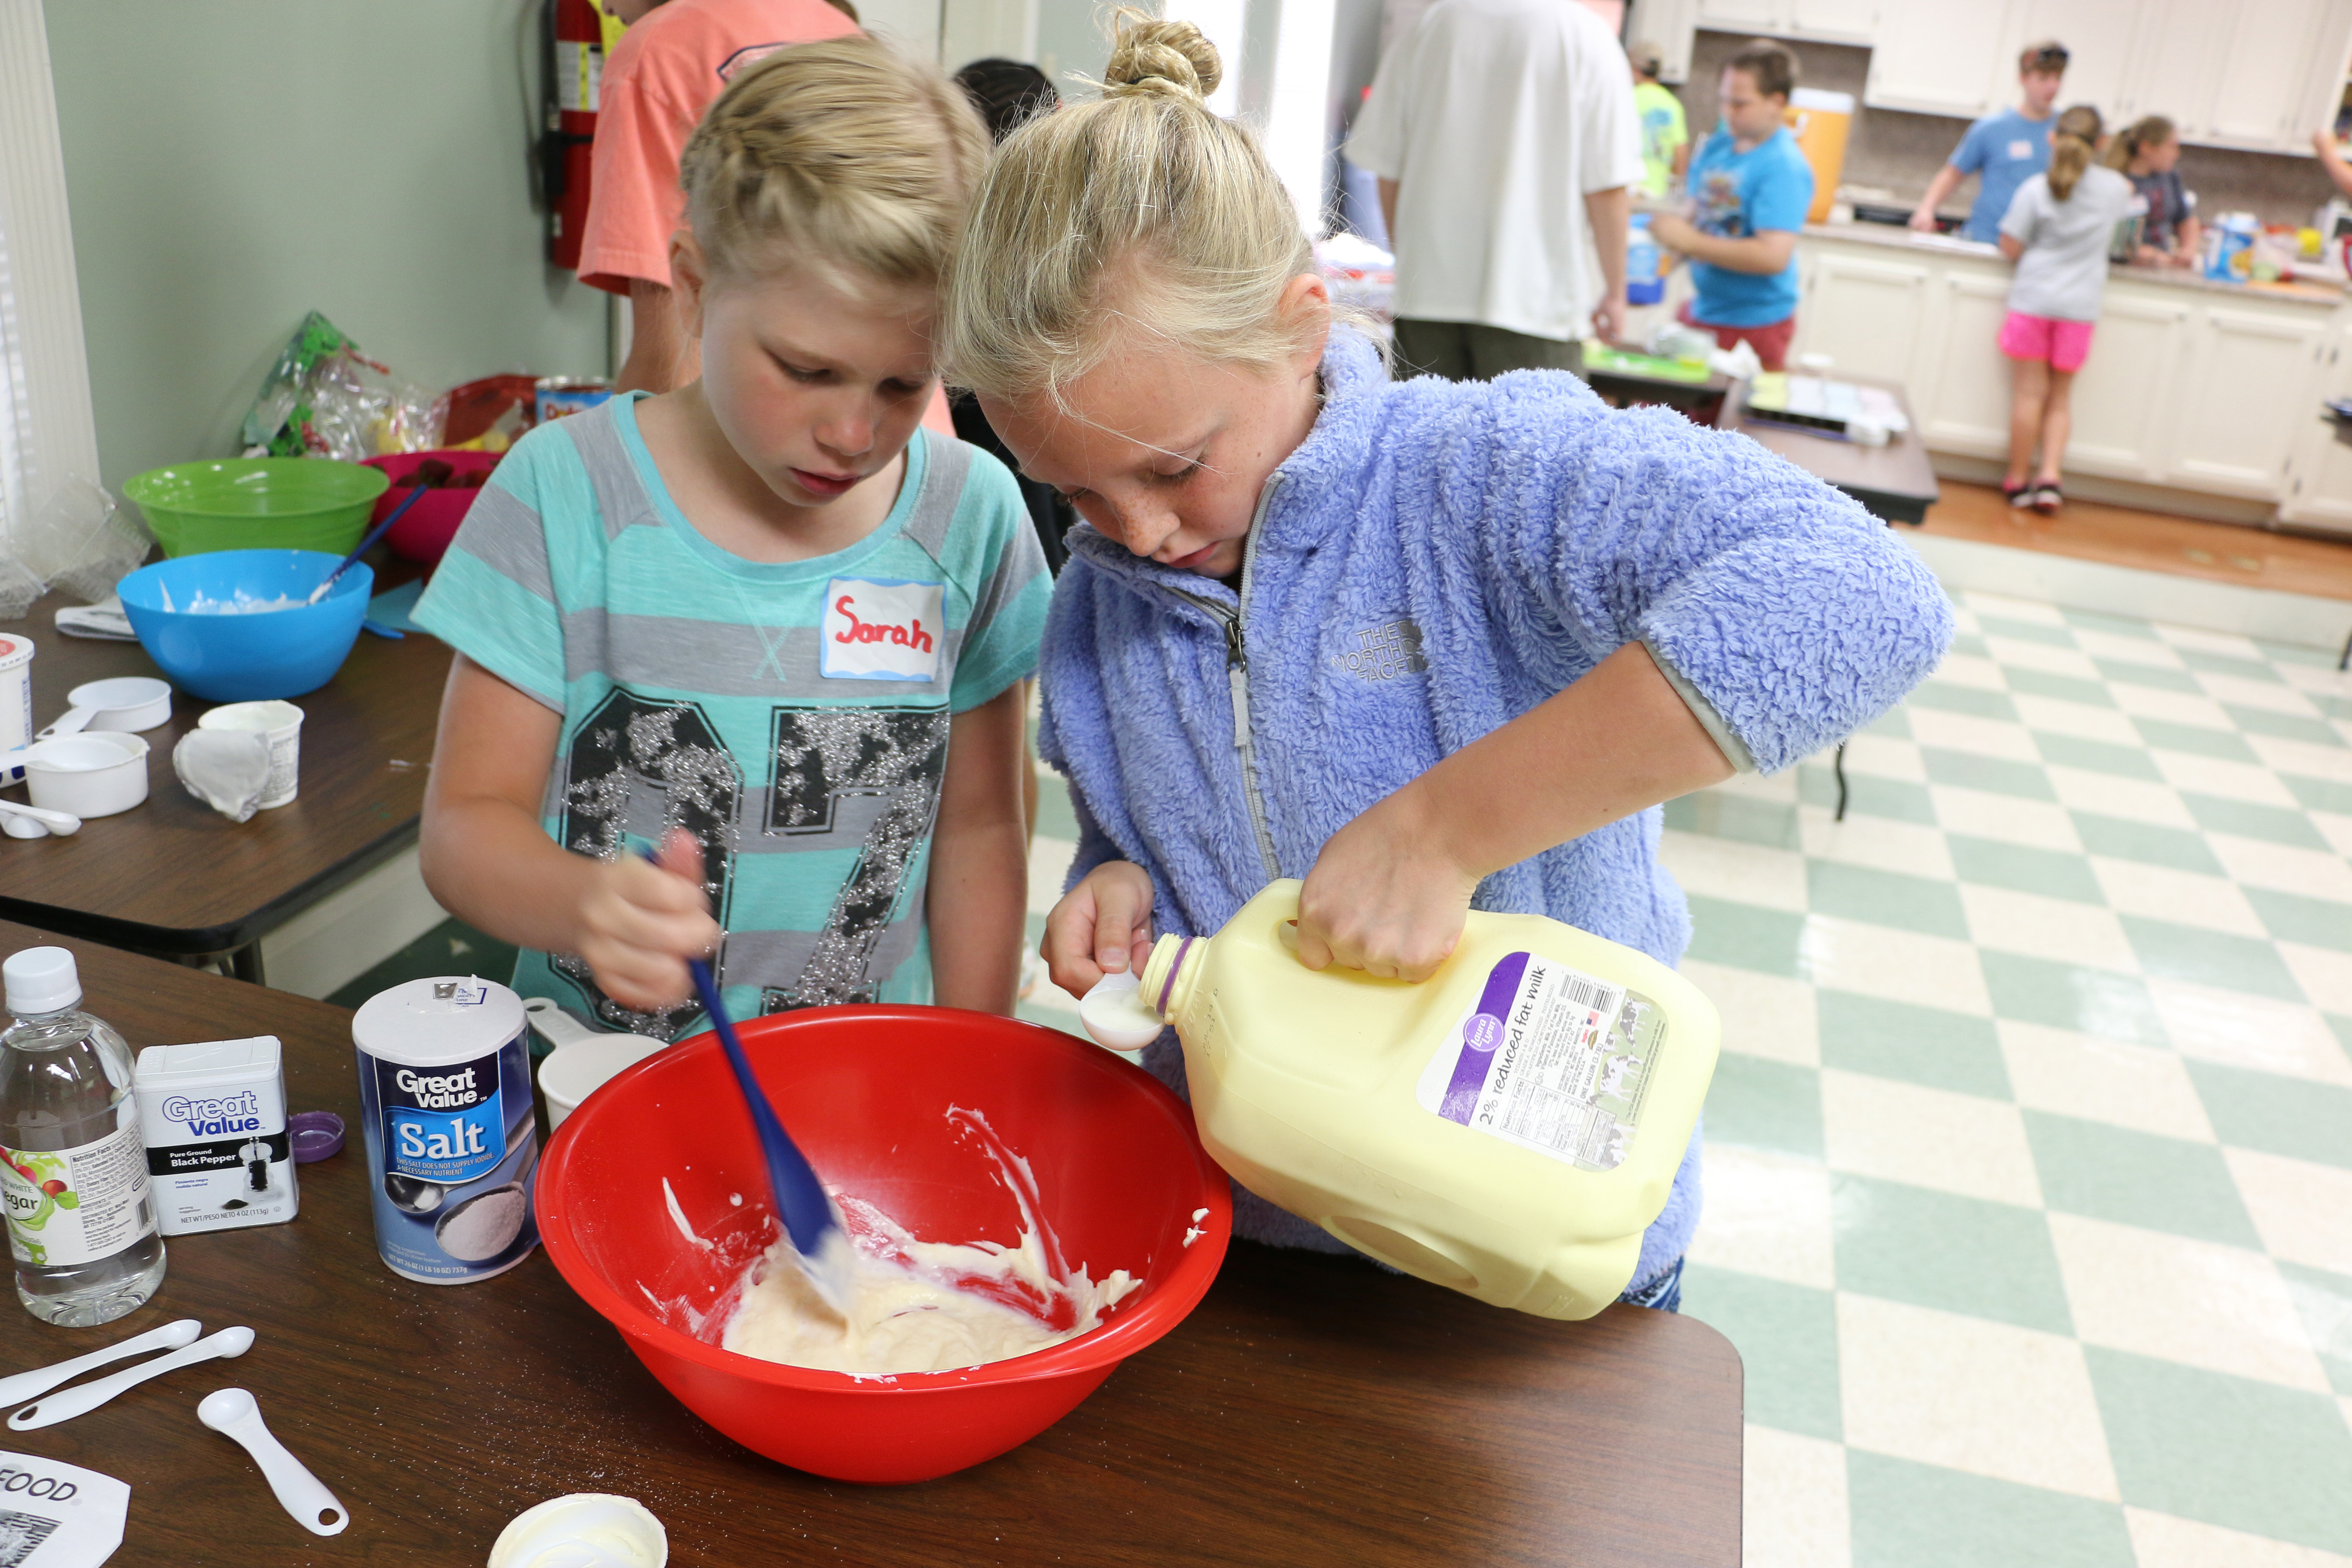 Sarah Bishop and Cailyn Berisko, Morgan County 4-H'ers, collaborate on a dressing for pasta salad during a Kids Can Cook camp this summer.